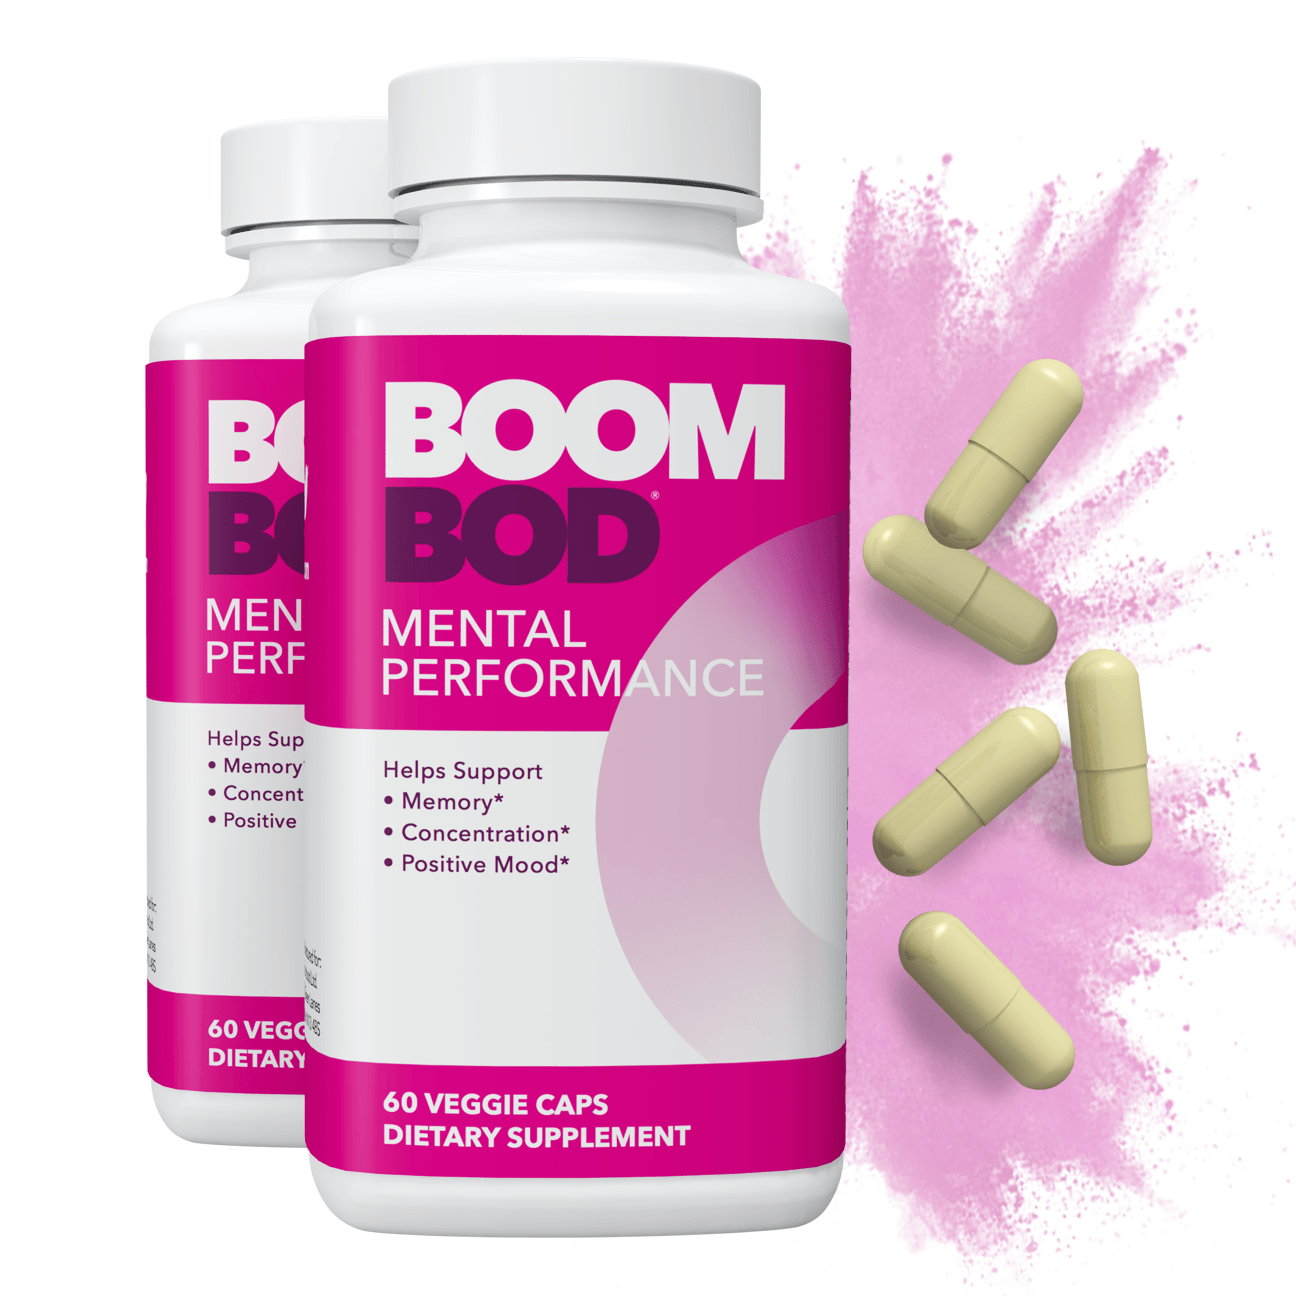 Boombod | Mental Performance Supplement | 60 Day | 120 Count